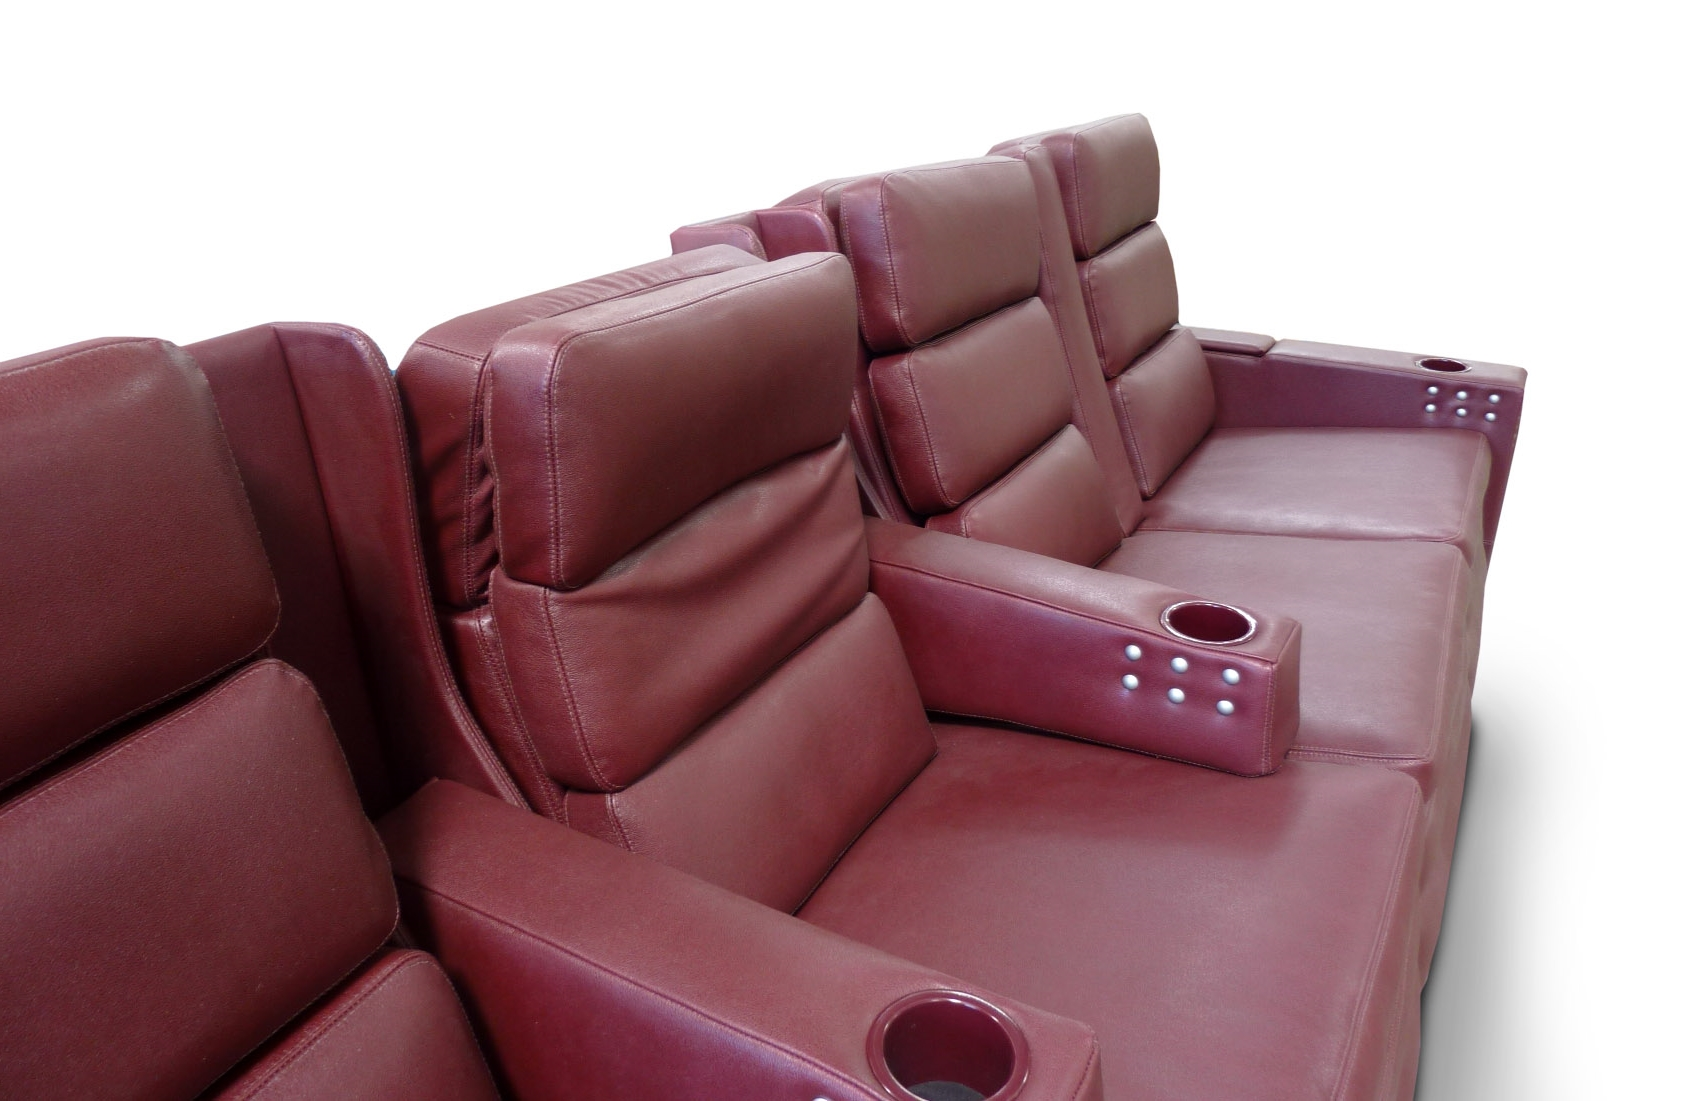 Pocket Arms, Stainless switches for Motorized Recline, Lumbar Support and Articulating Headrest; Cup holders powder coated to match leather.